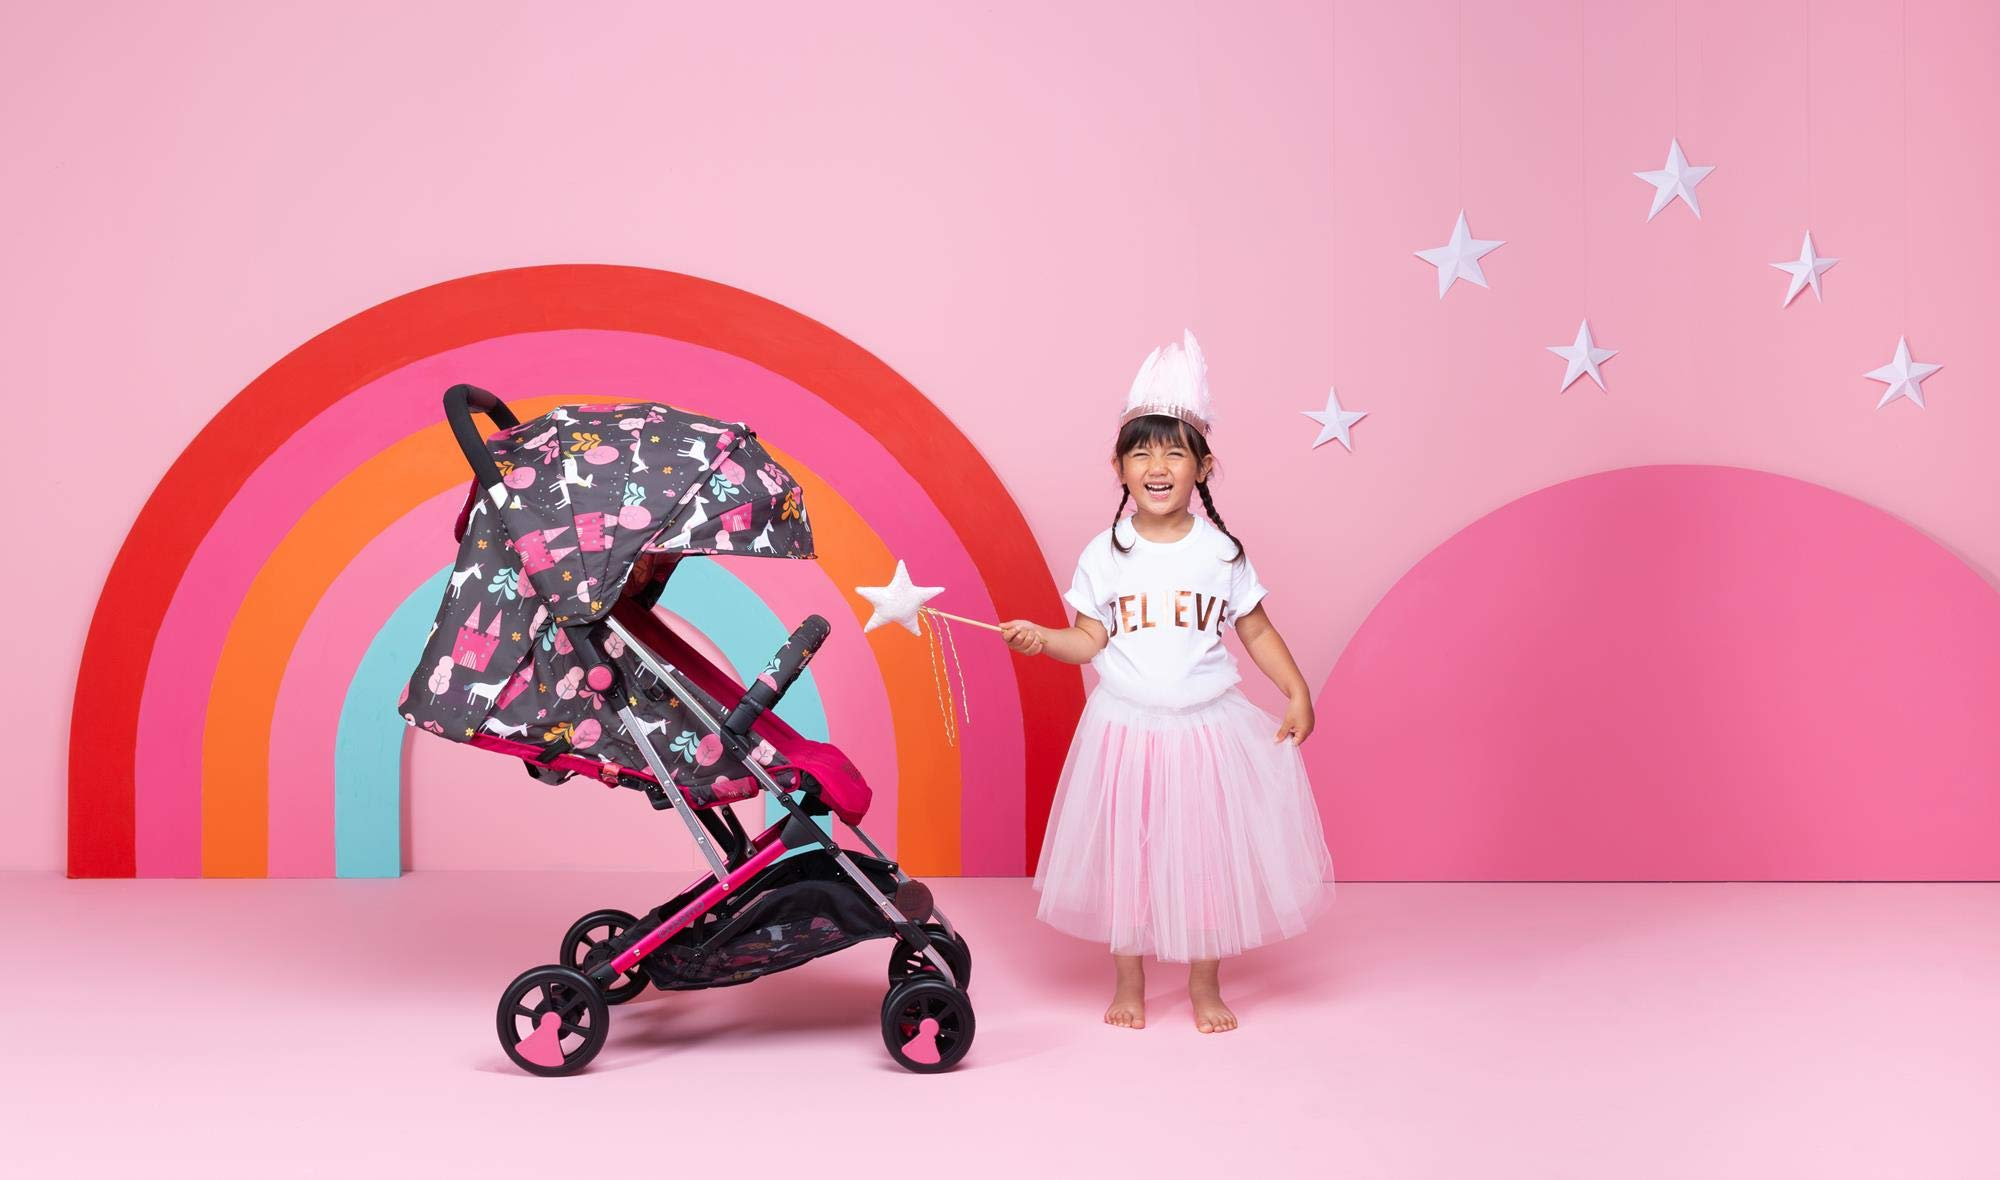 Cosatto CT4224 Woosh 2 Unicorn Land 7.2 kg Cosatto Suitable from birth to max weight of 25kg, lets your toddler use it for even longer Lightweight, sturdy aluminium frame New-born recline 4